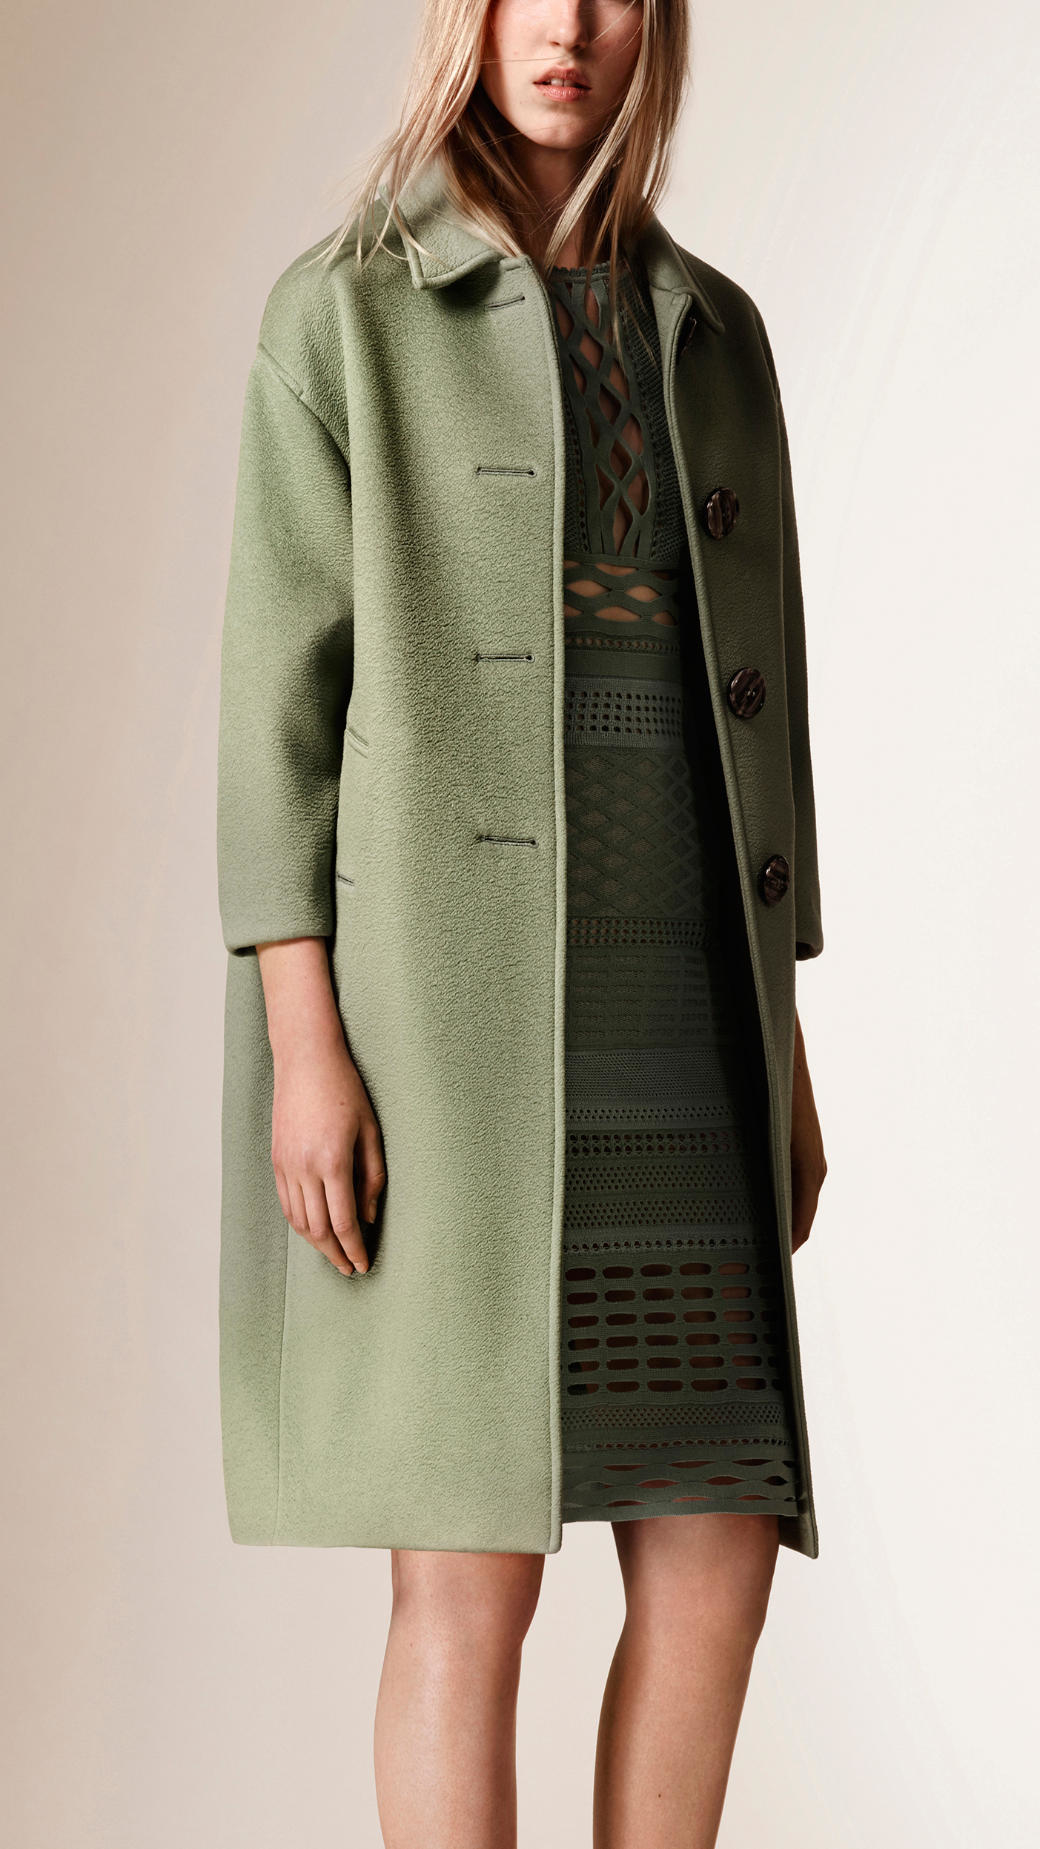 Burberry Unlined Cashmere Coat in Green | Lyst